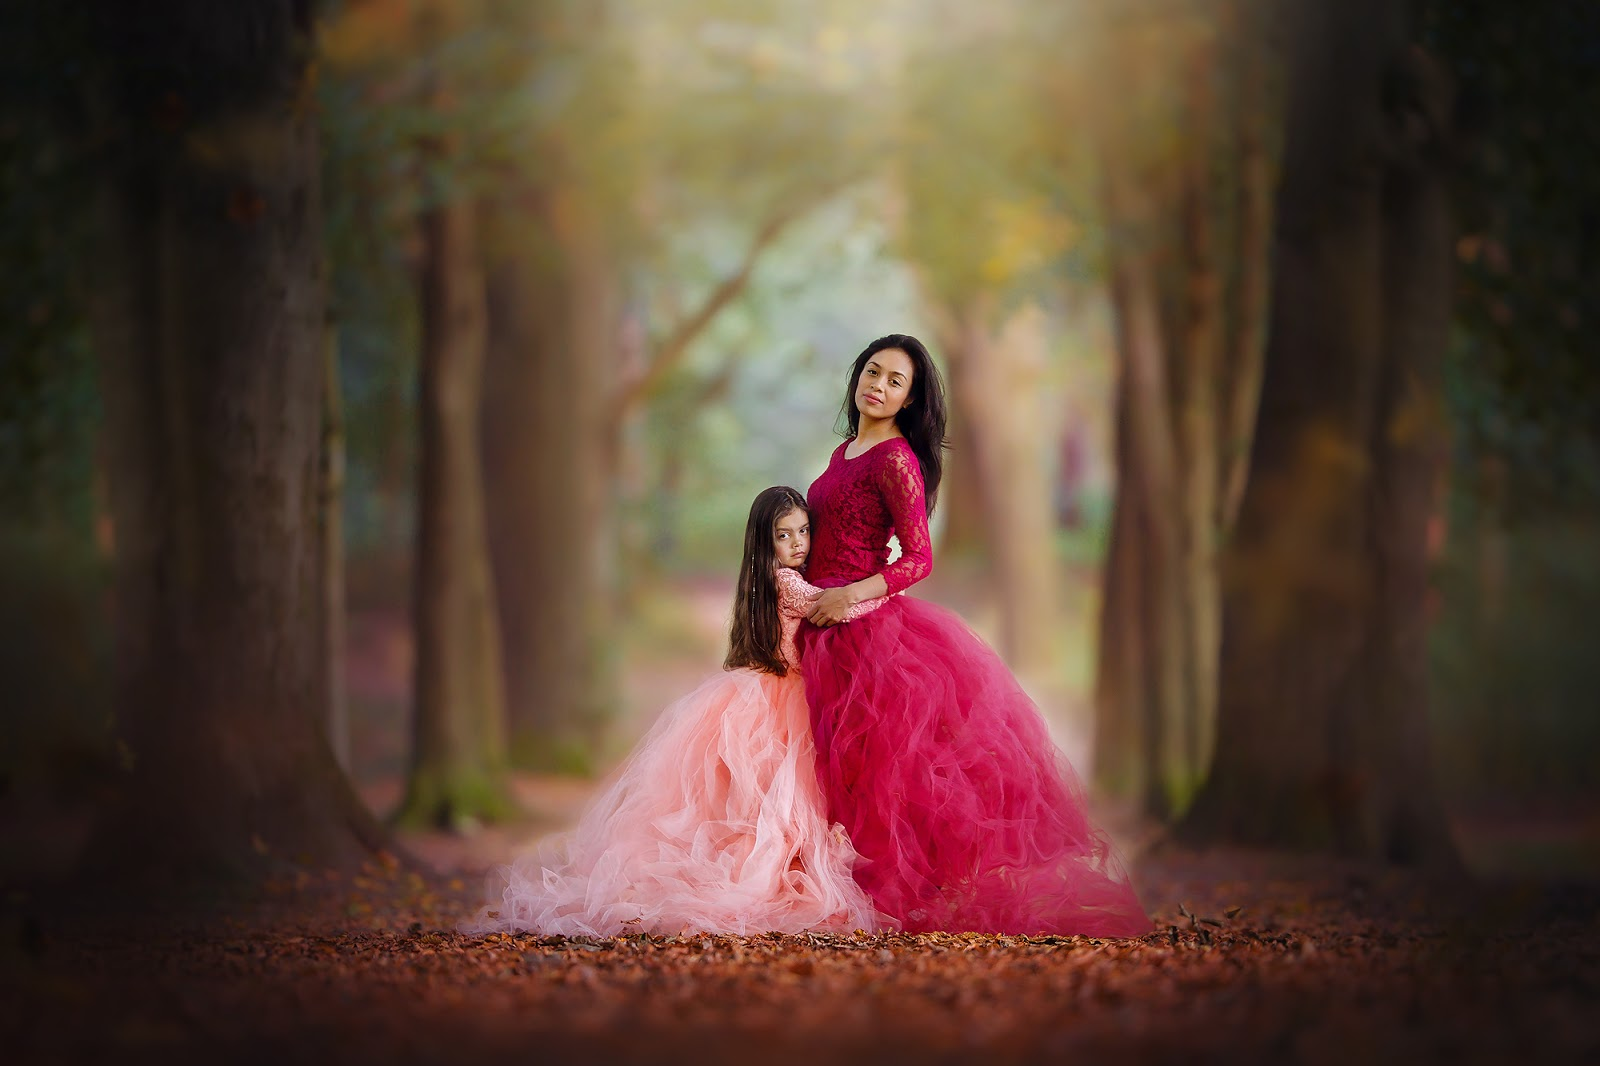 Canon portrait of a mother and daughter standing in a forest in beautiful dresses by Willie Kers